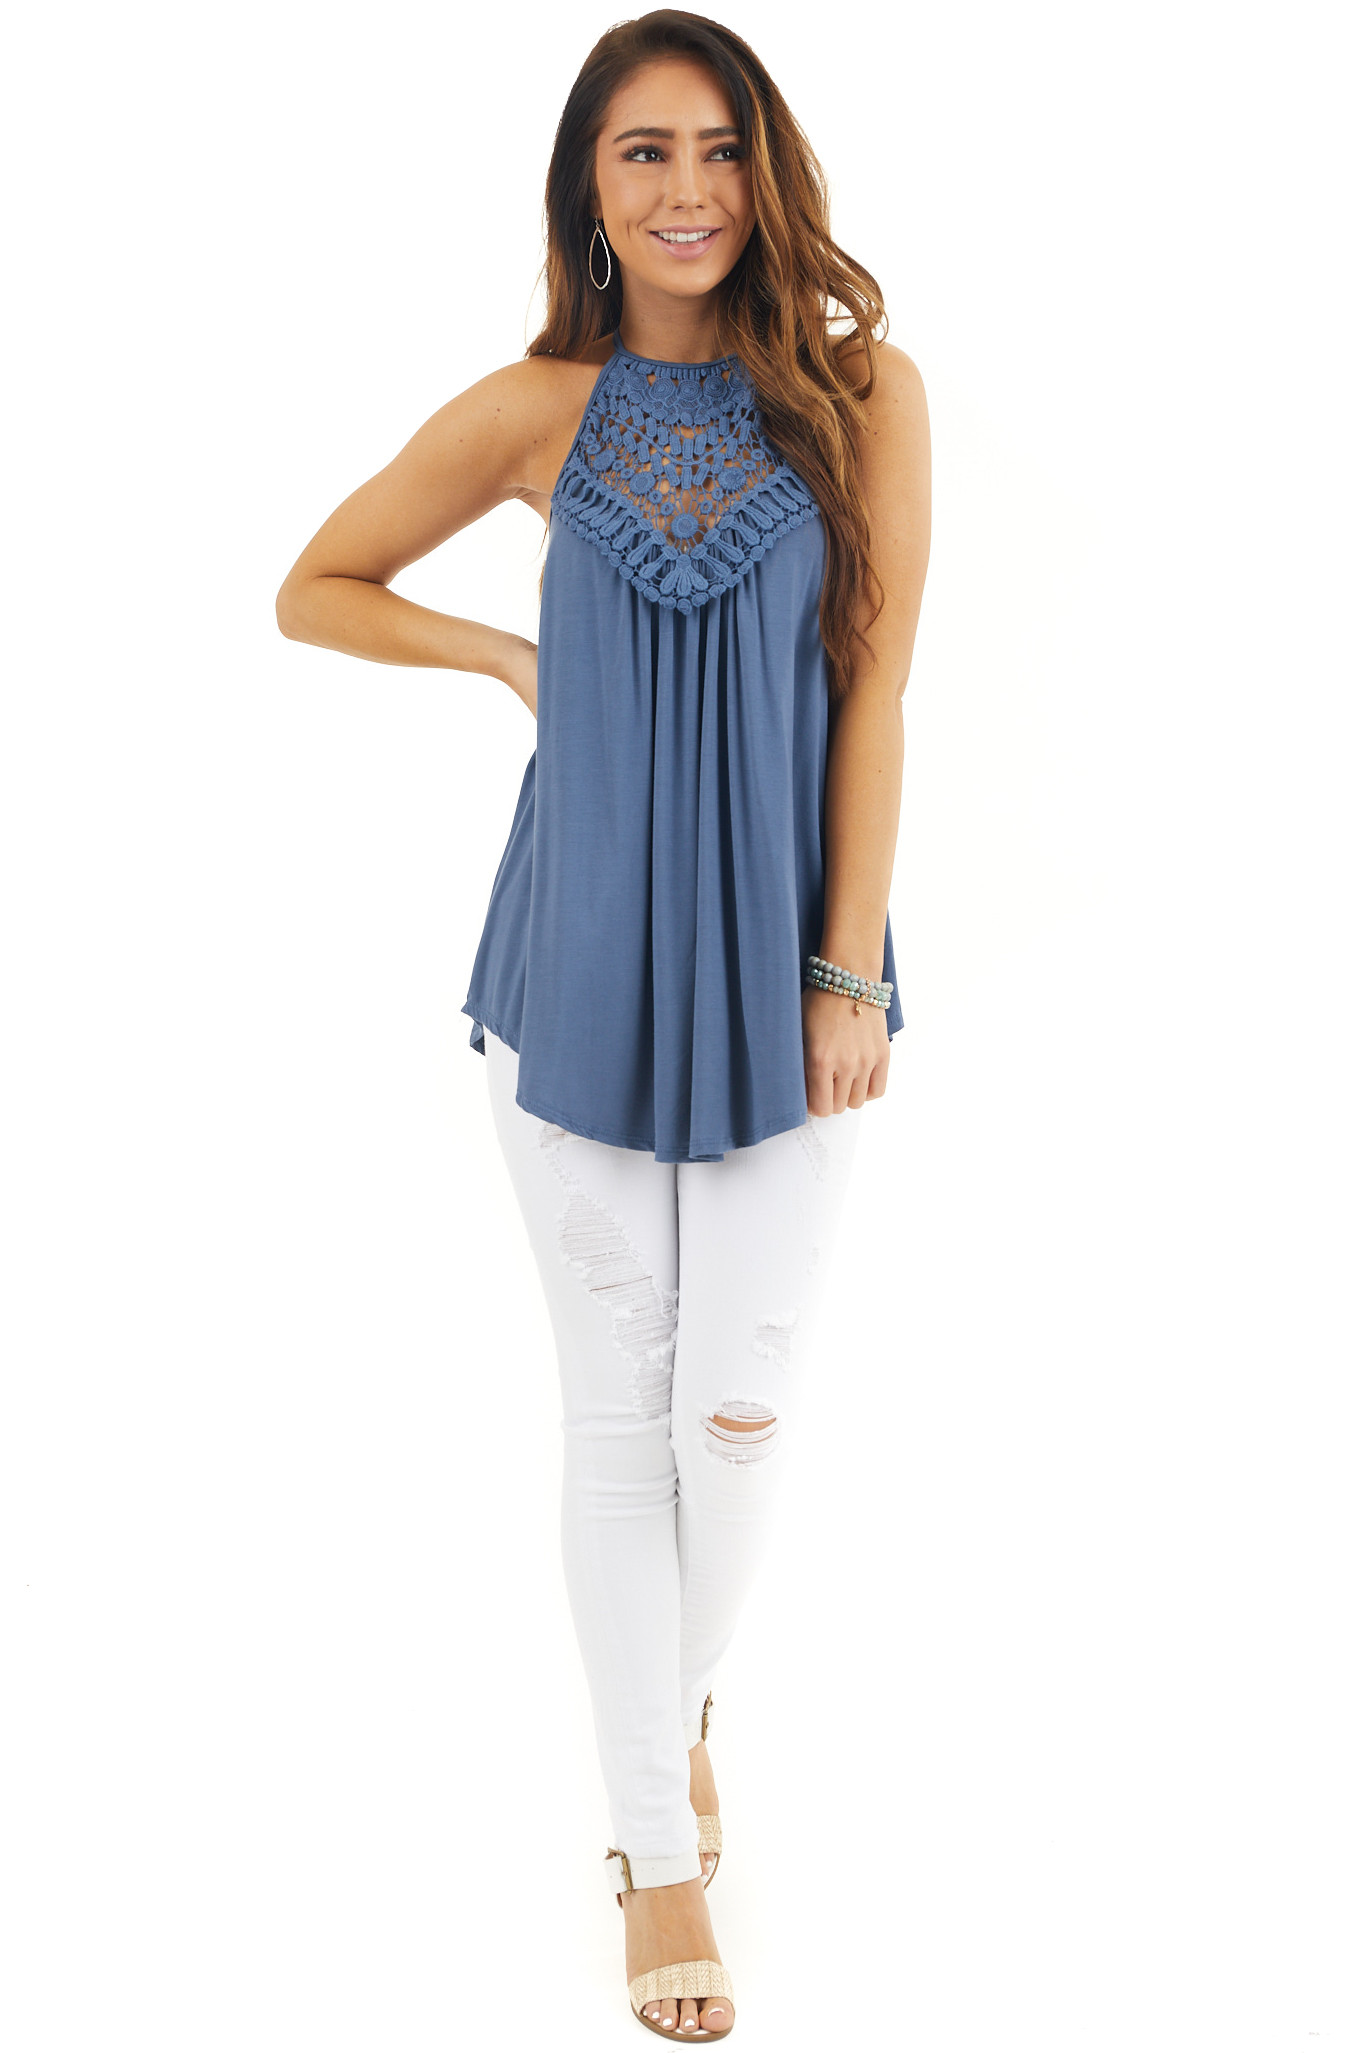 Slate Blue Tank Top with Sheer Lace Chest